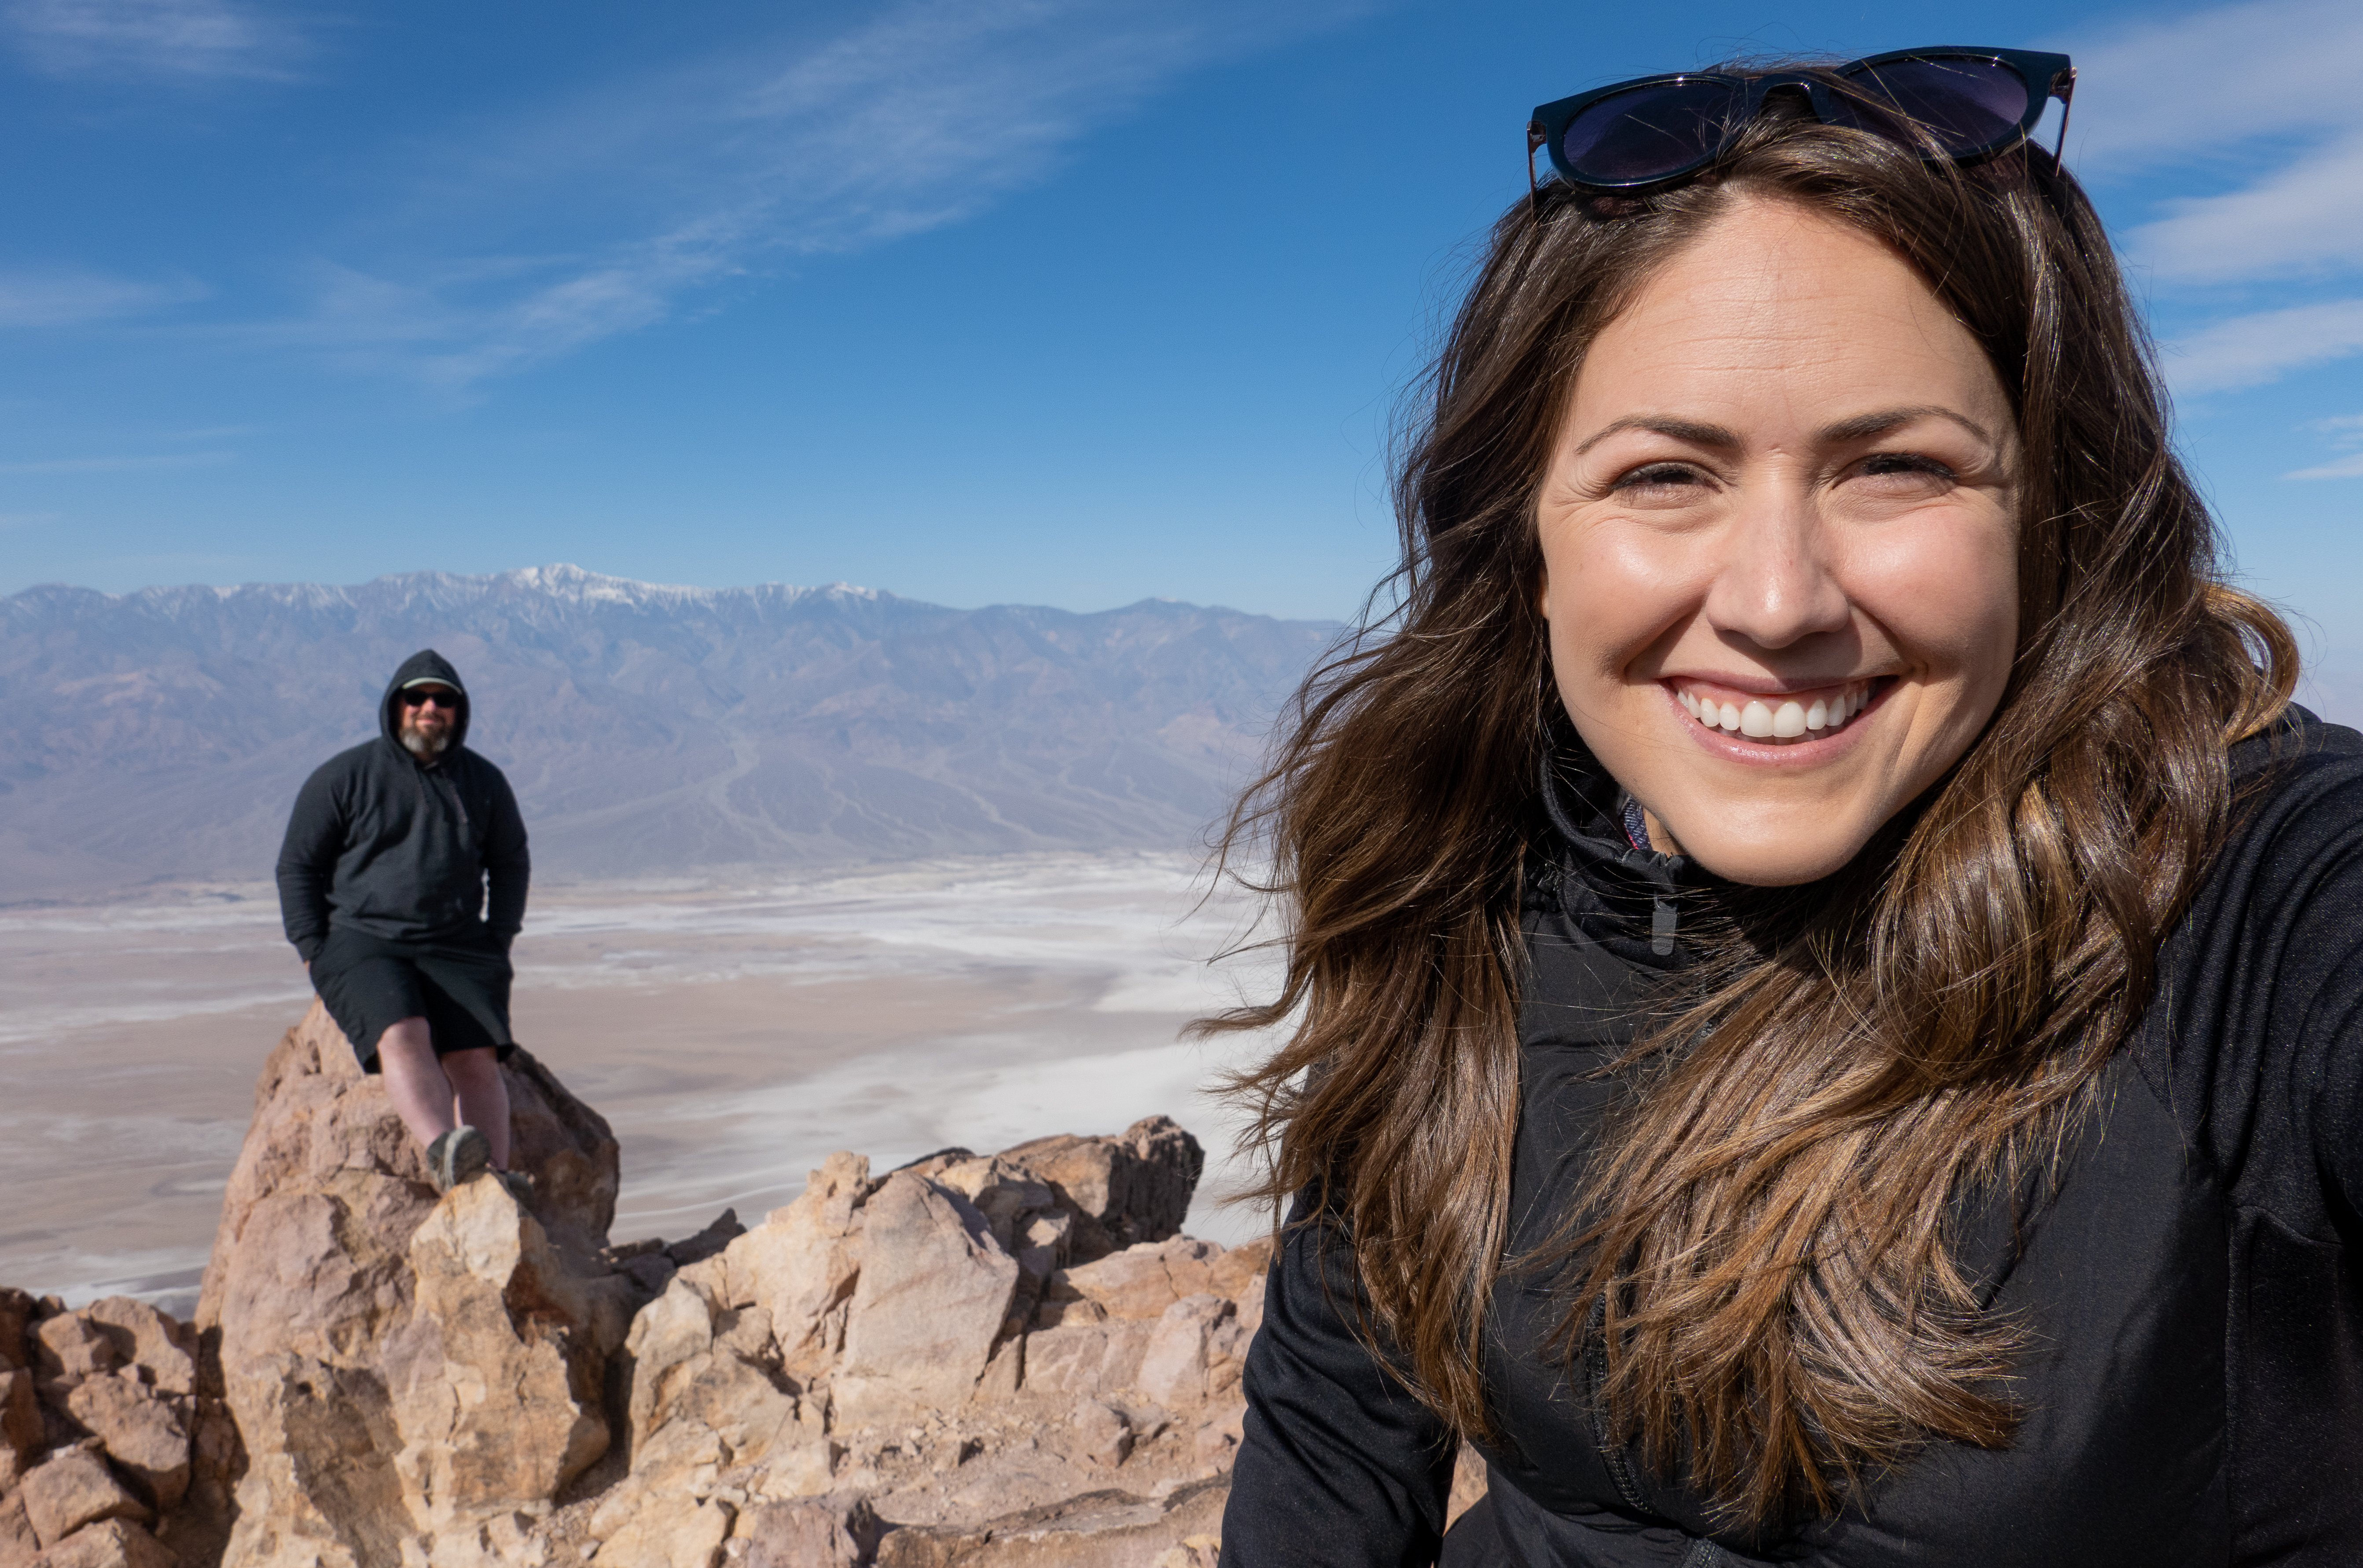 Barrett and Cindy at Death Valley National Park